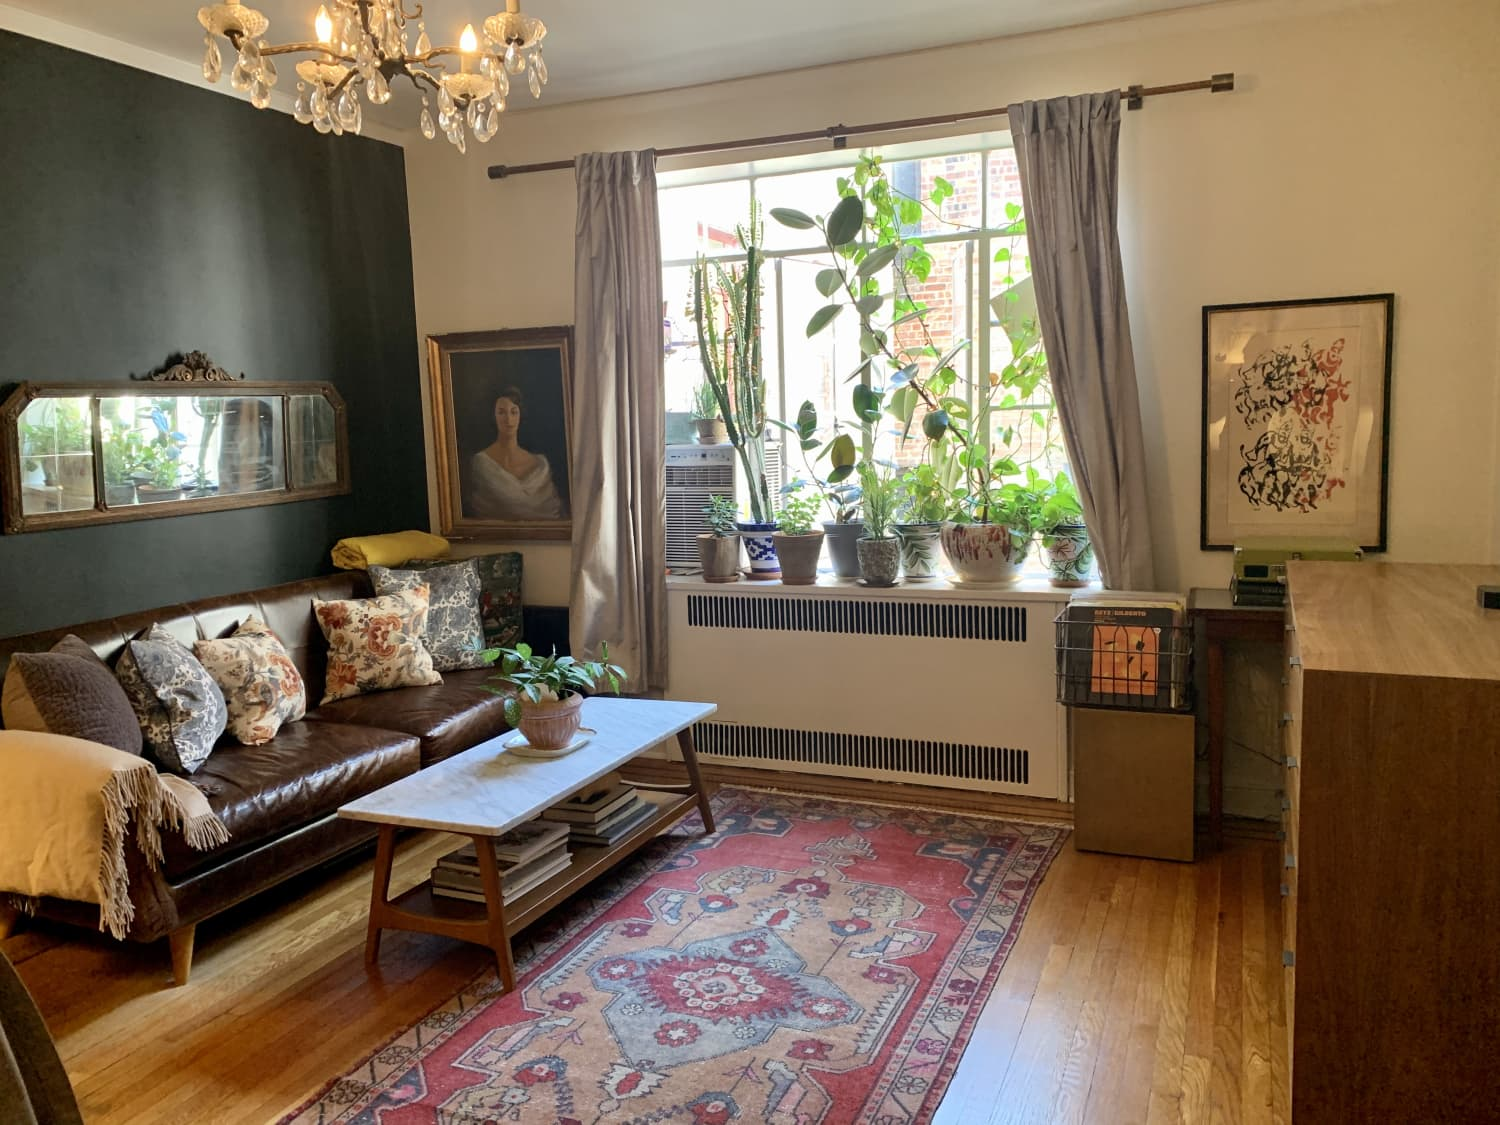 A 450-Square-Foot Shared NYC Studio Apartment Features Dark Walls, Good Art, and Lots of Plants